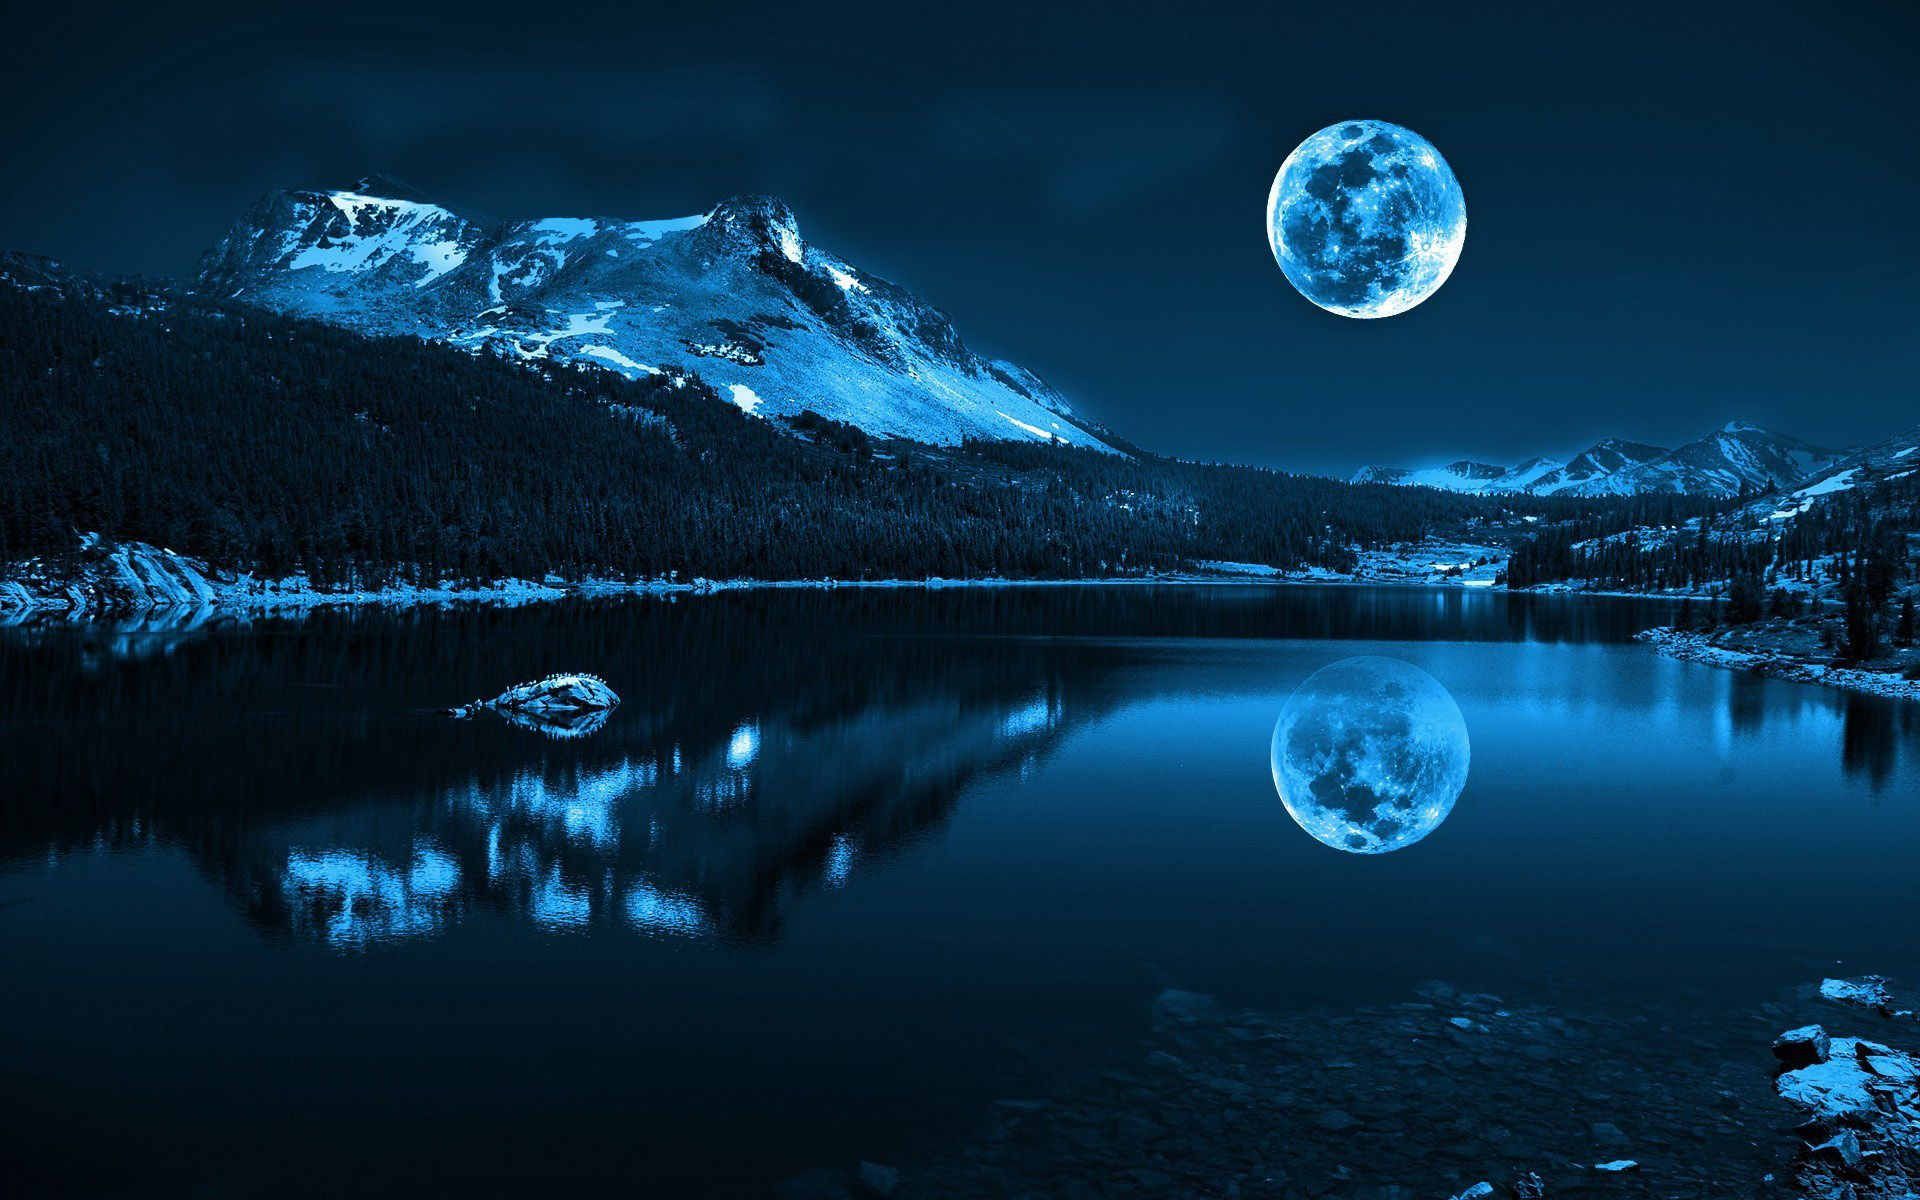 Nature Night Desktop Wallpapers Nature Other Night View Beautiful Moon Beautiful Nature Scenery